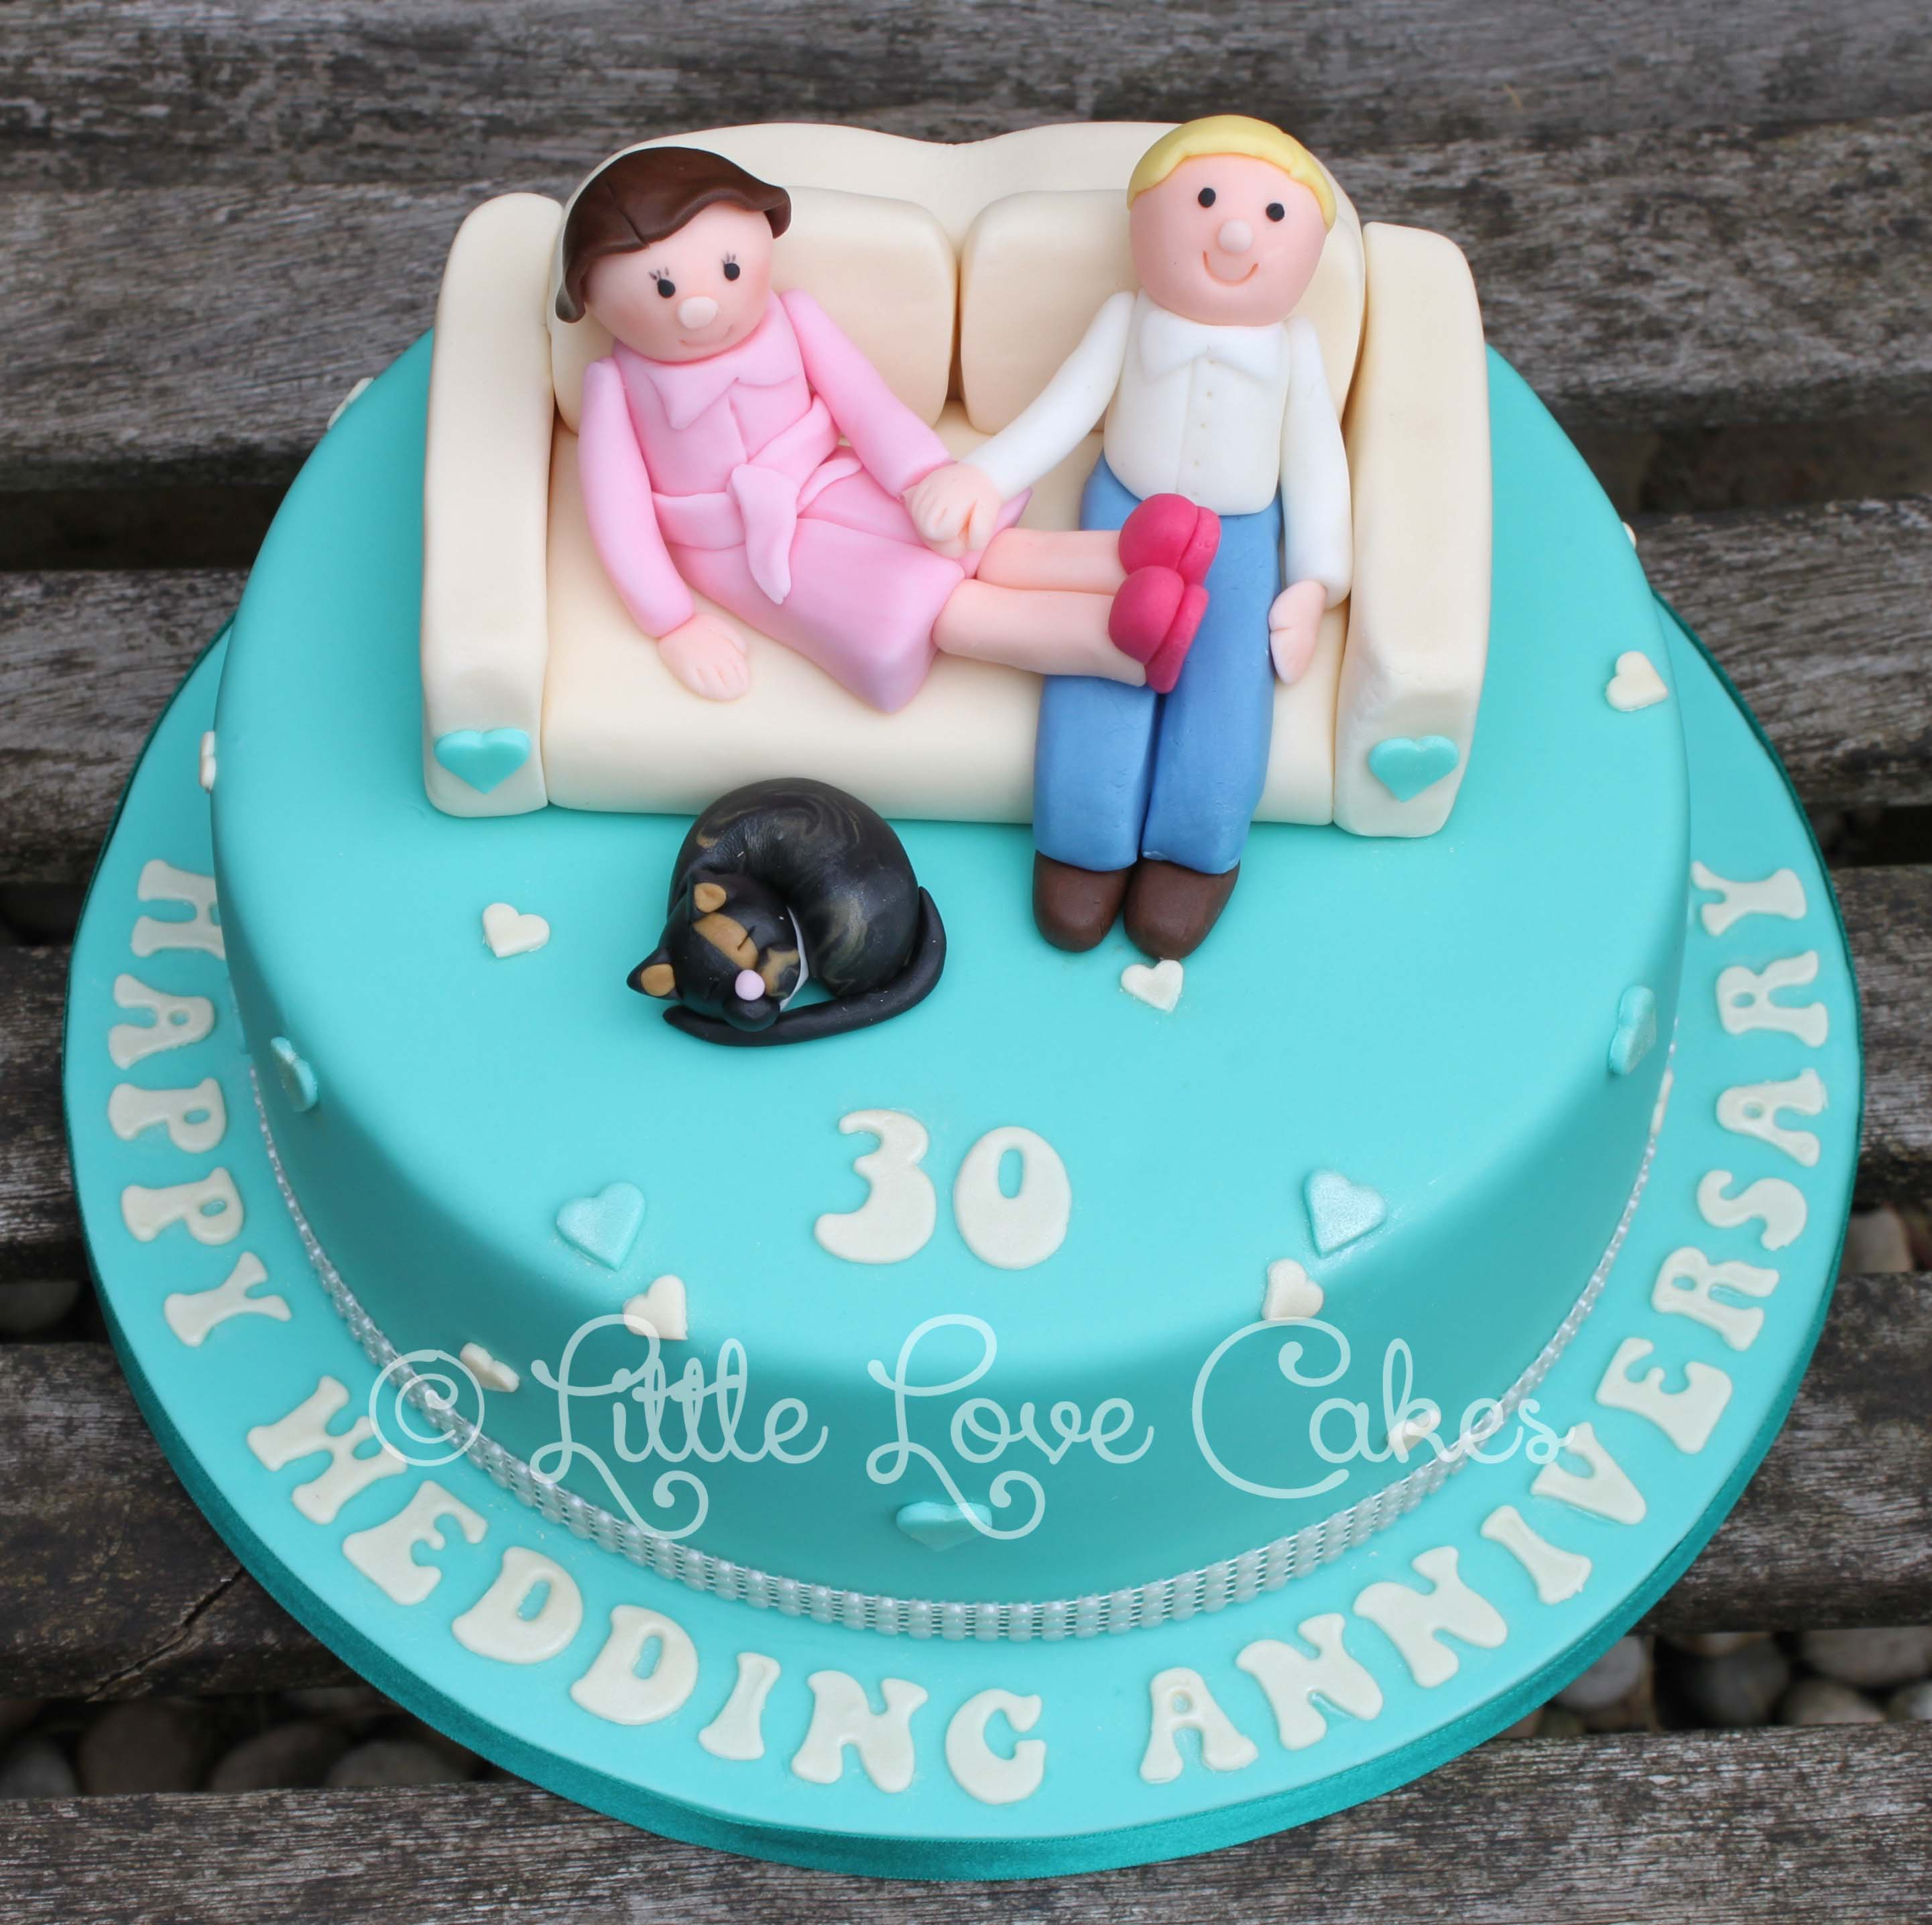 30th anniversary couple on a sofa cake